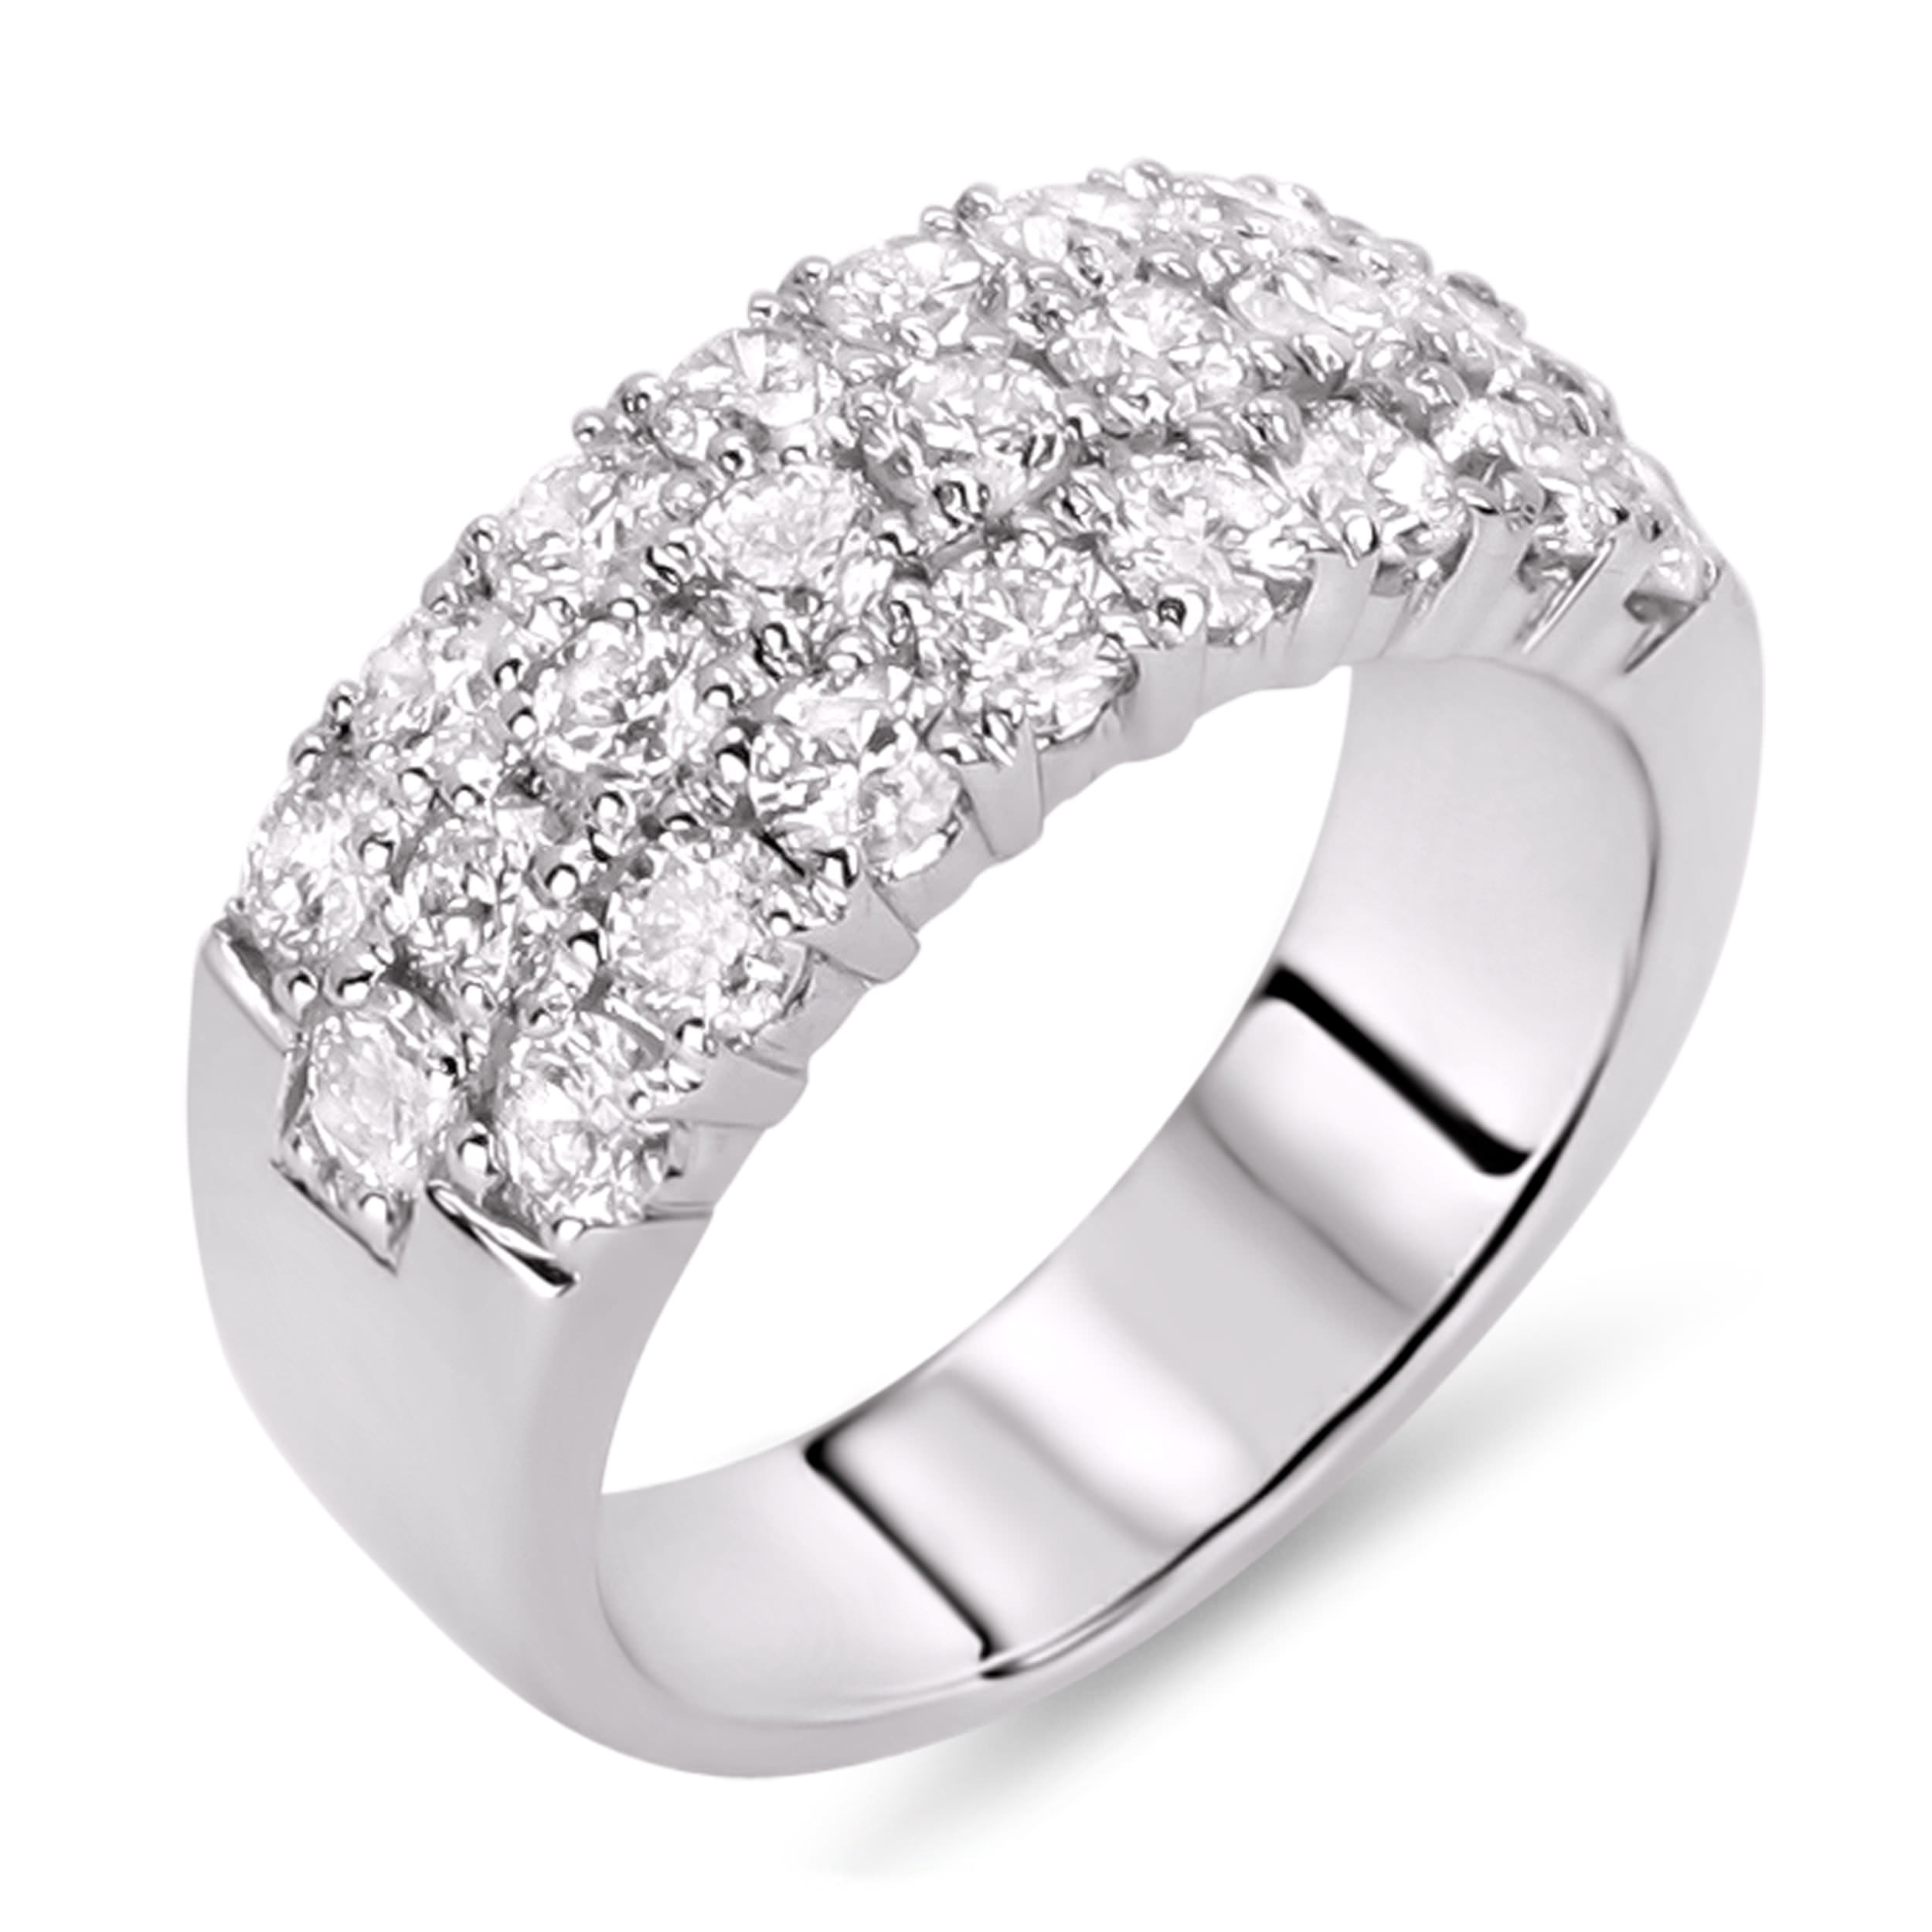 beautiful with rings wedding for how three engagement band stack anniversary tiffany stone to aniversary her ring